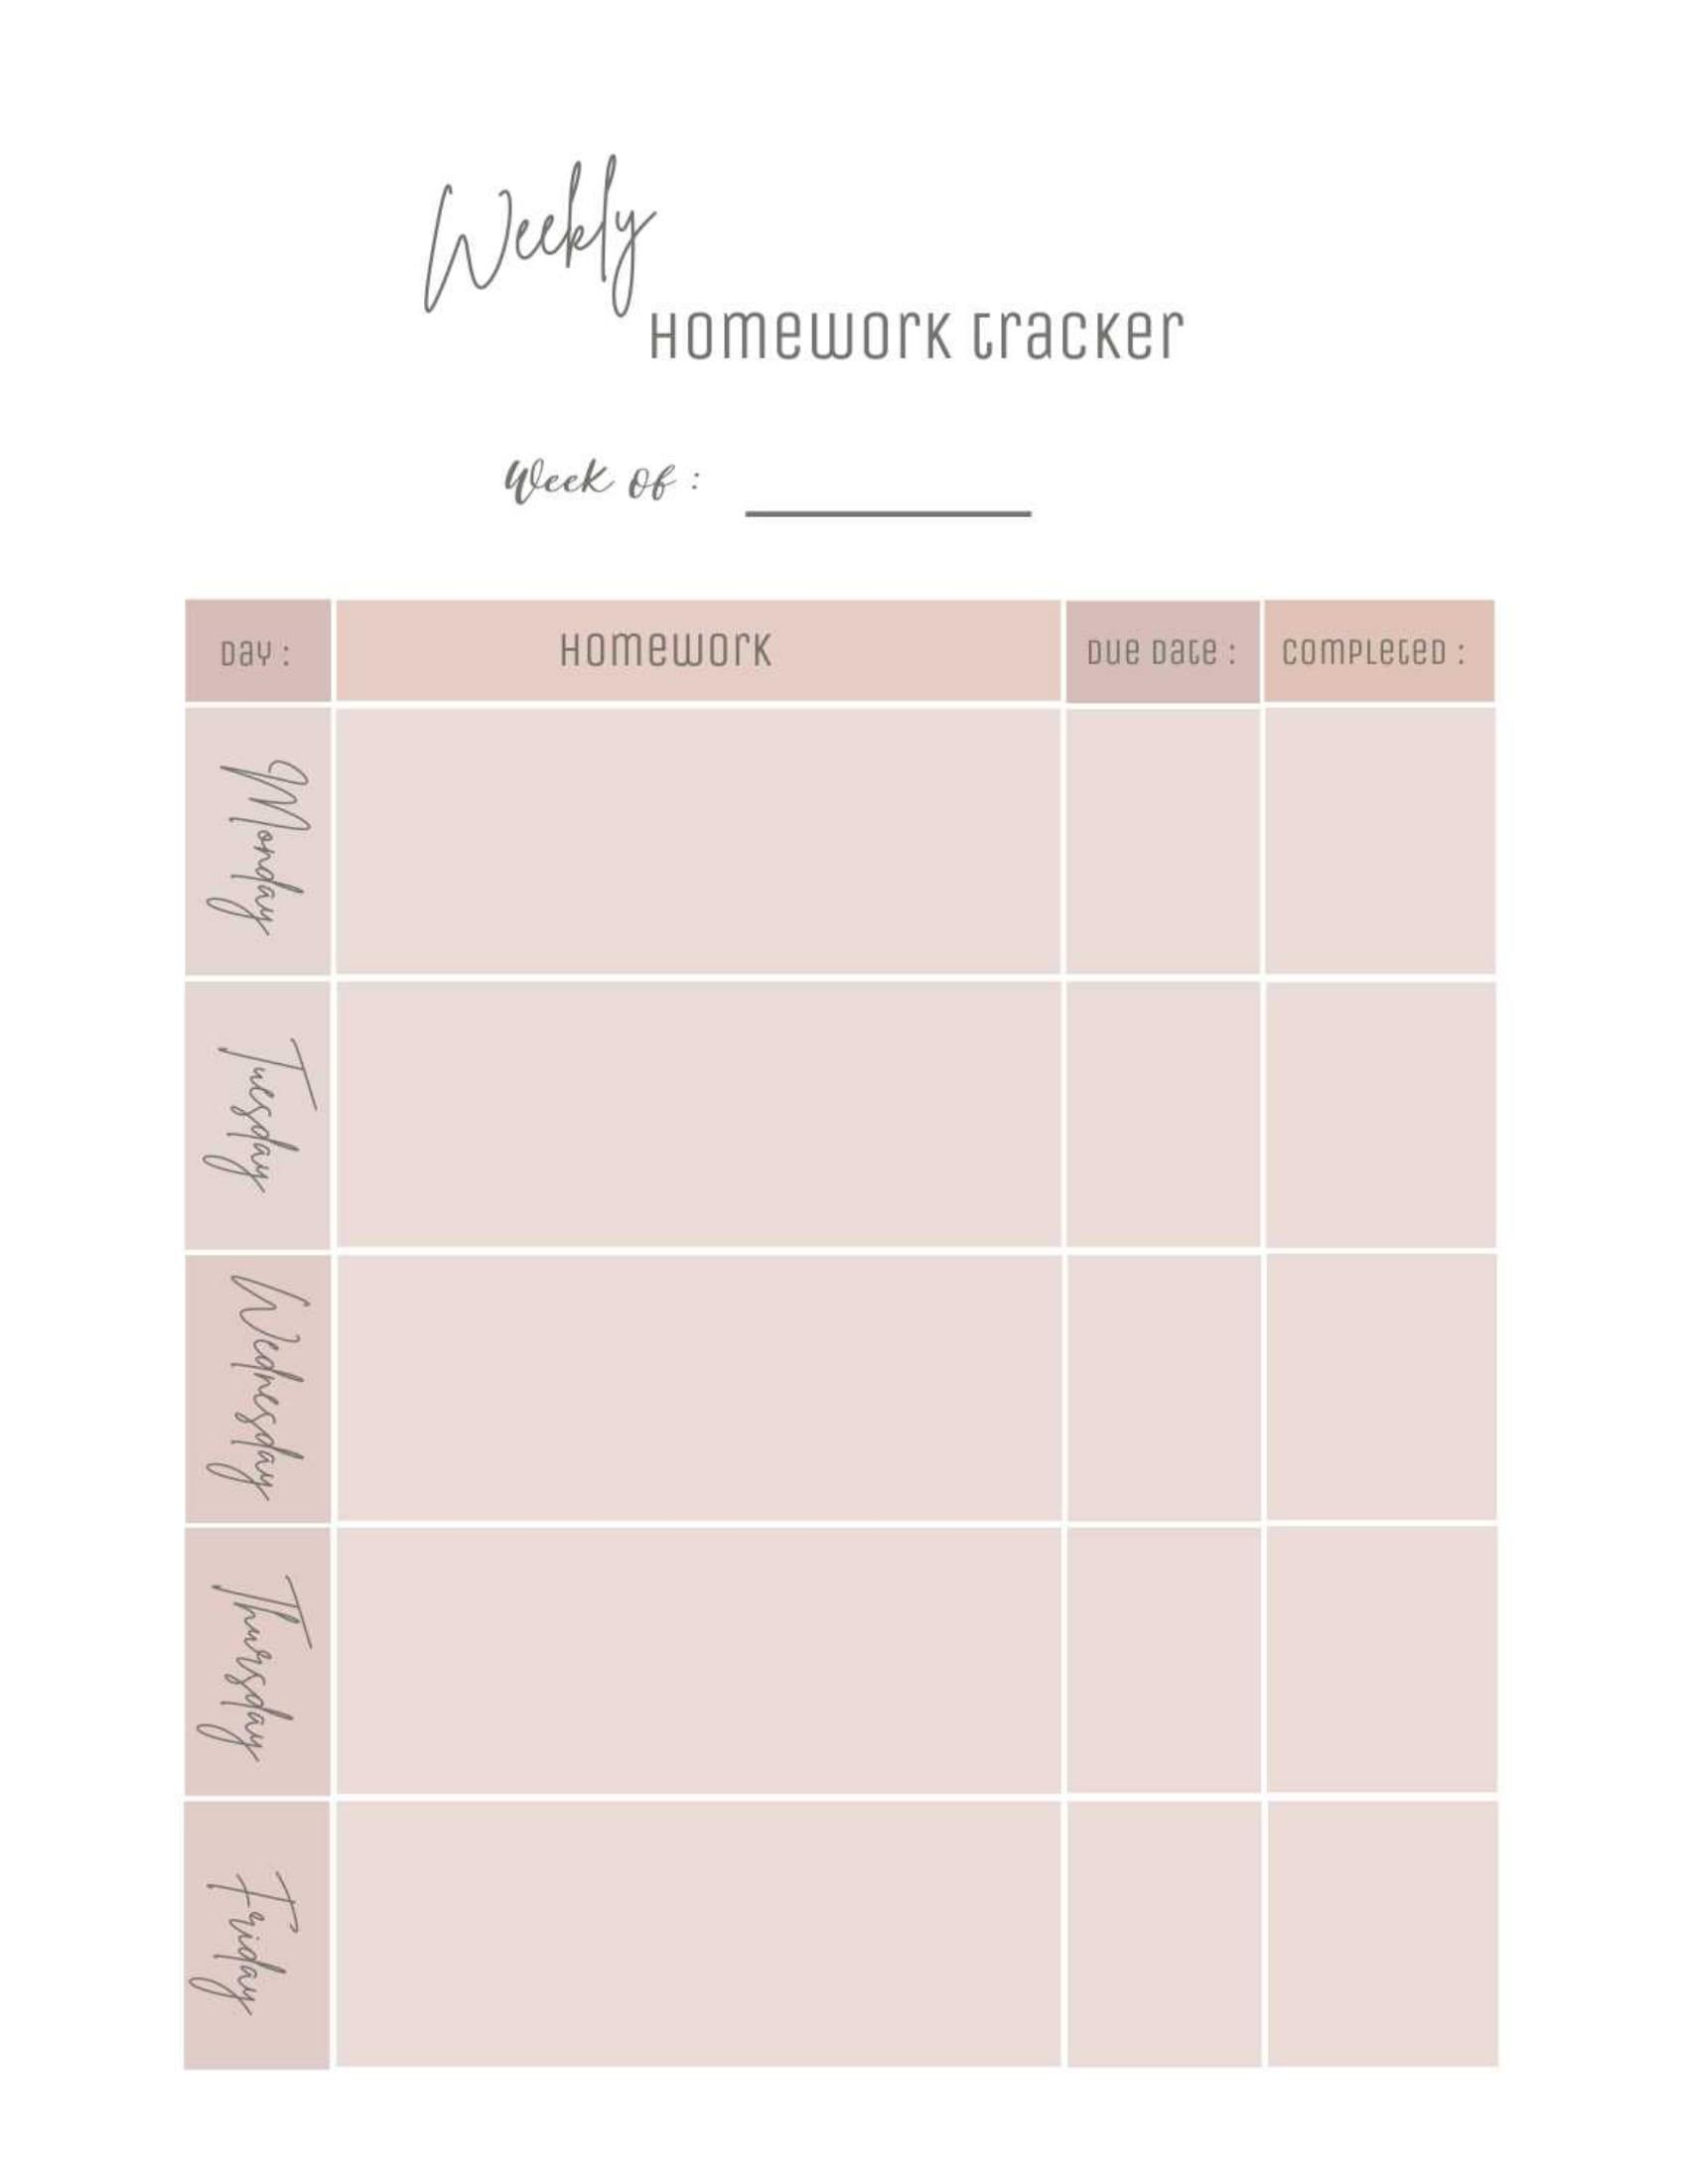 Weekly Homework Tracker